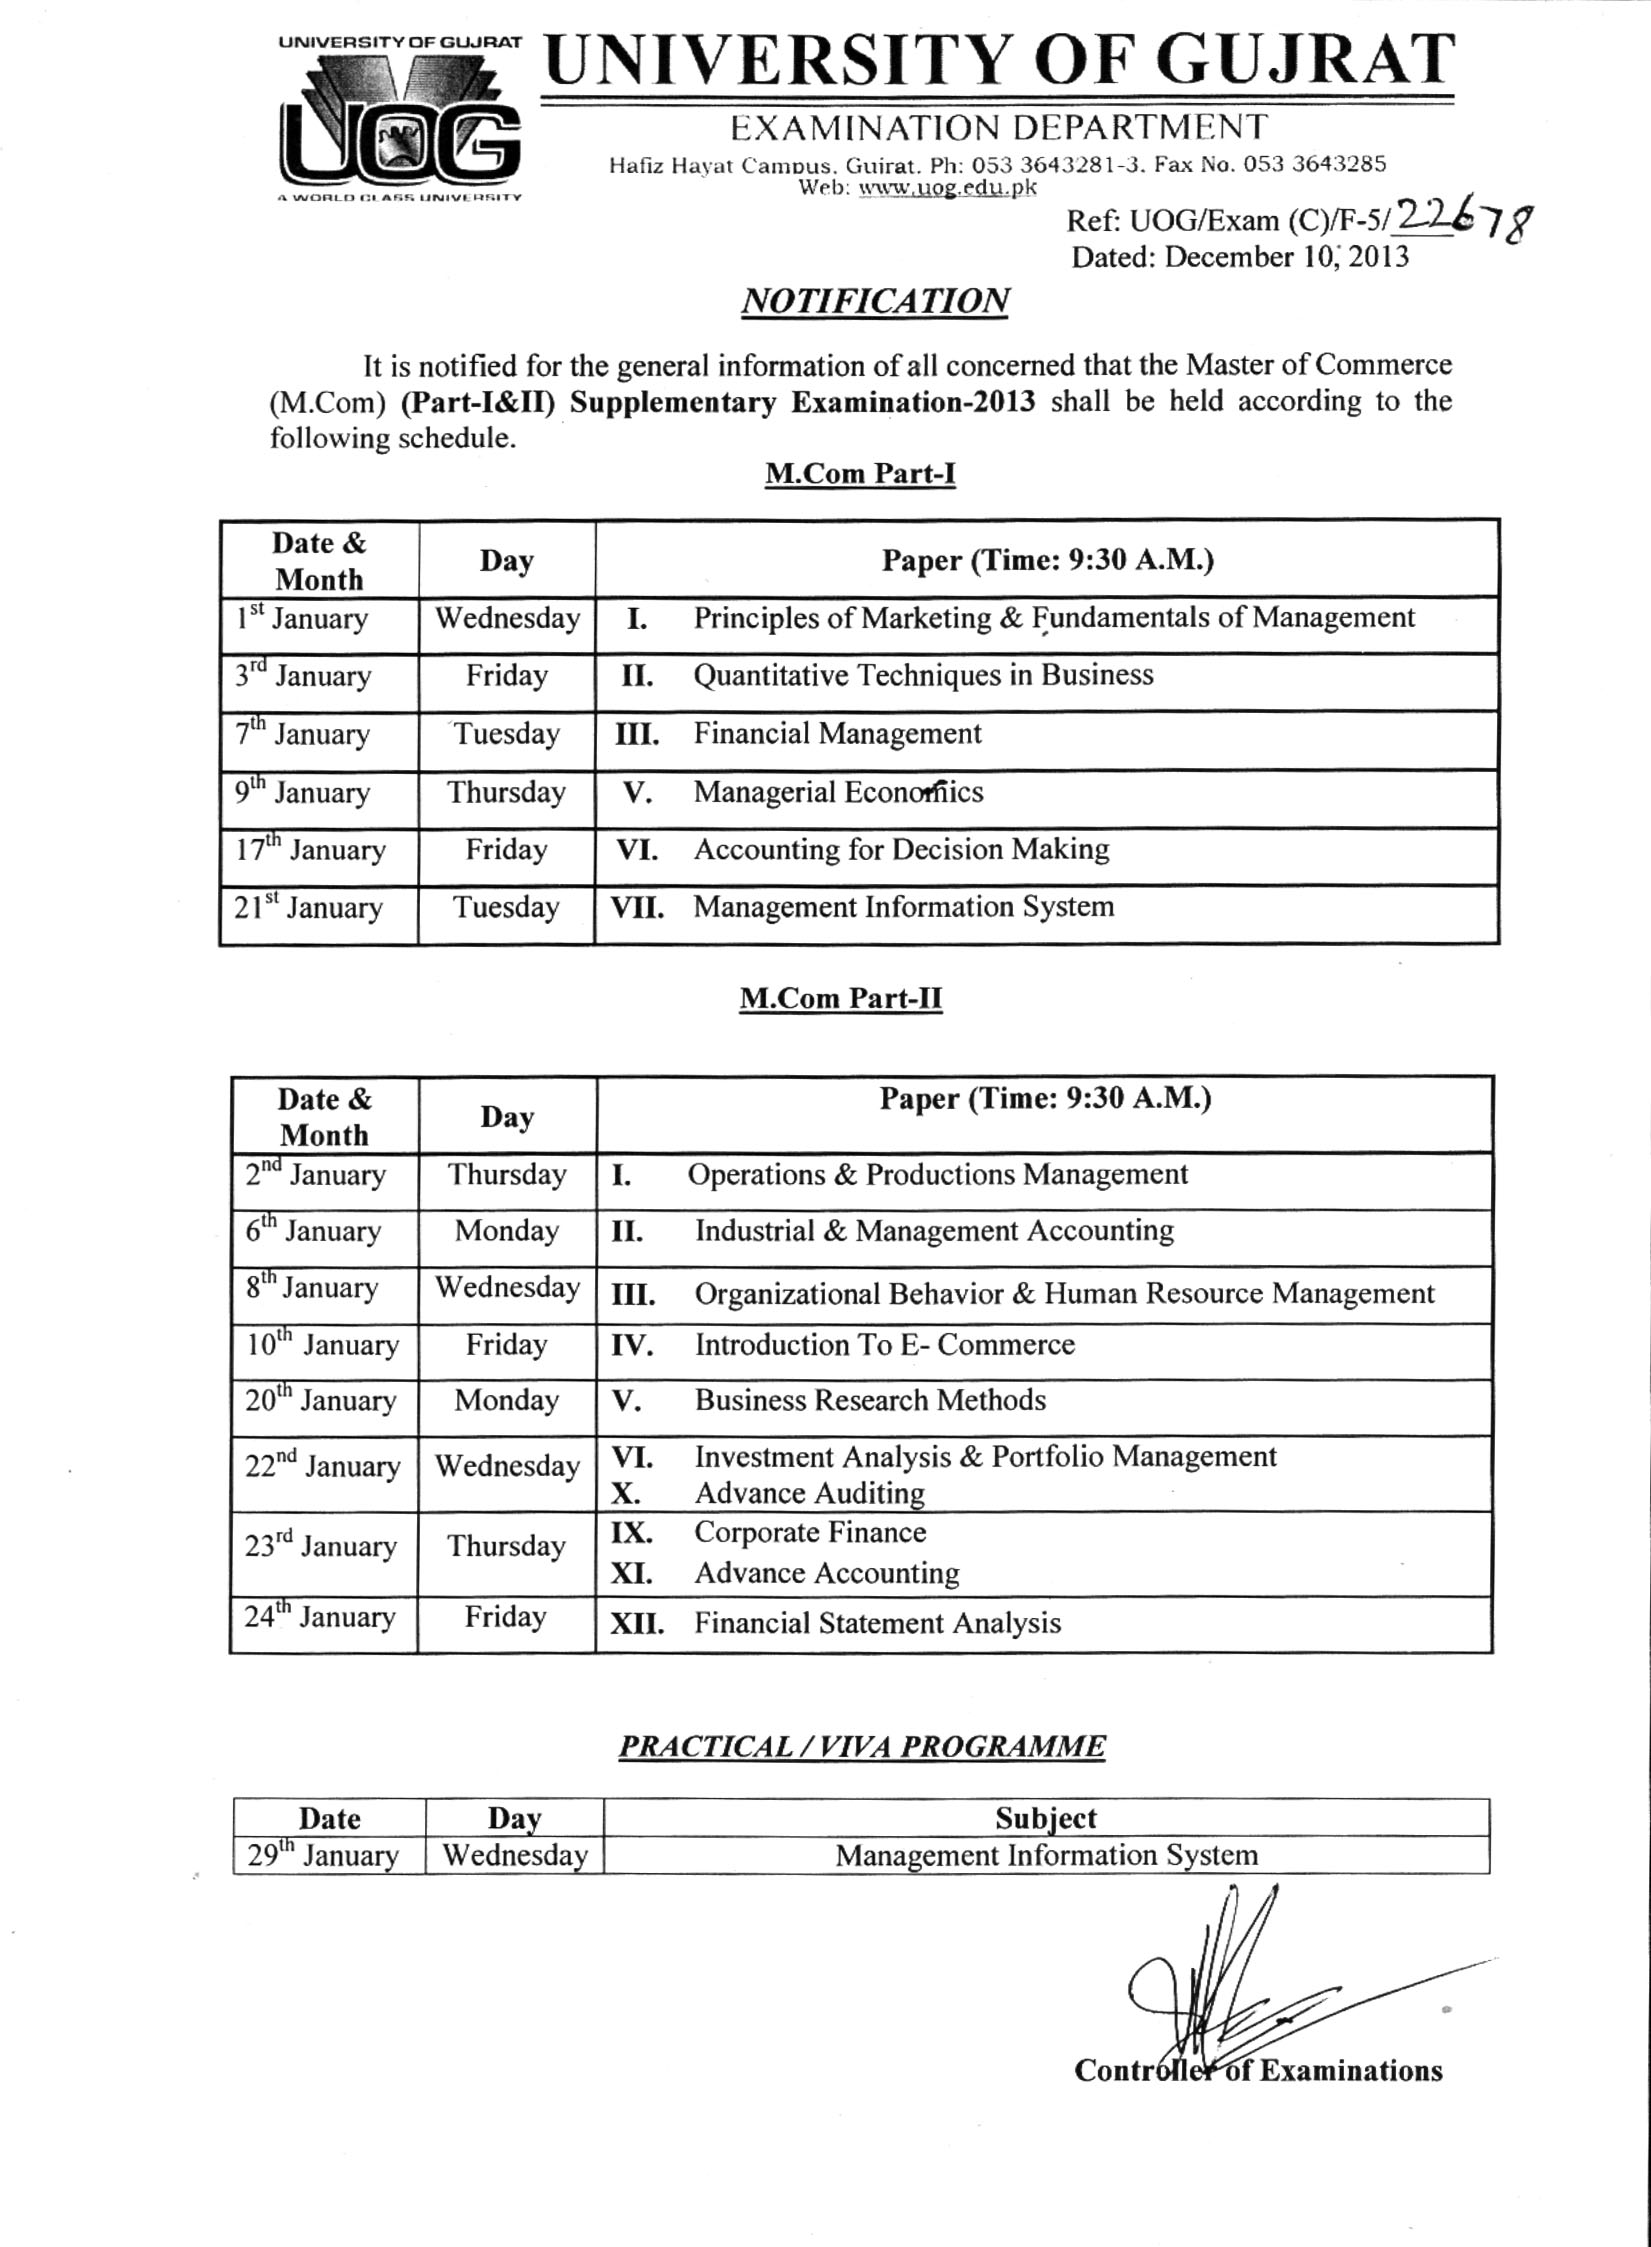 University of Gujrat UOG M.Com Supplementary Date Sheet 2013